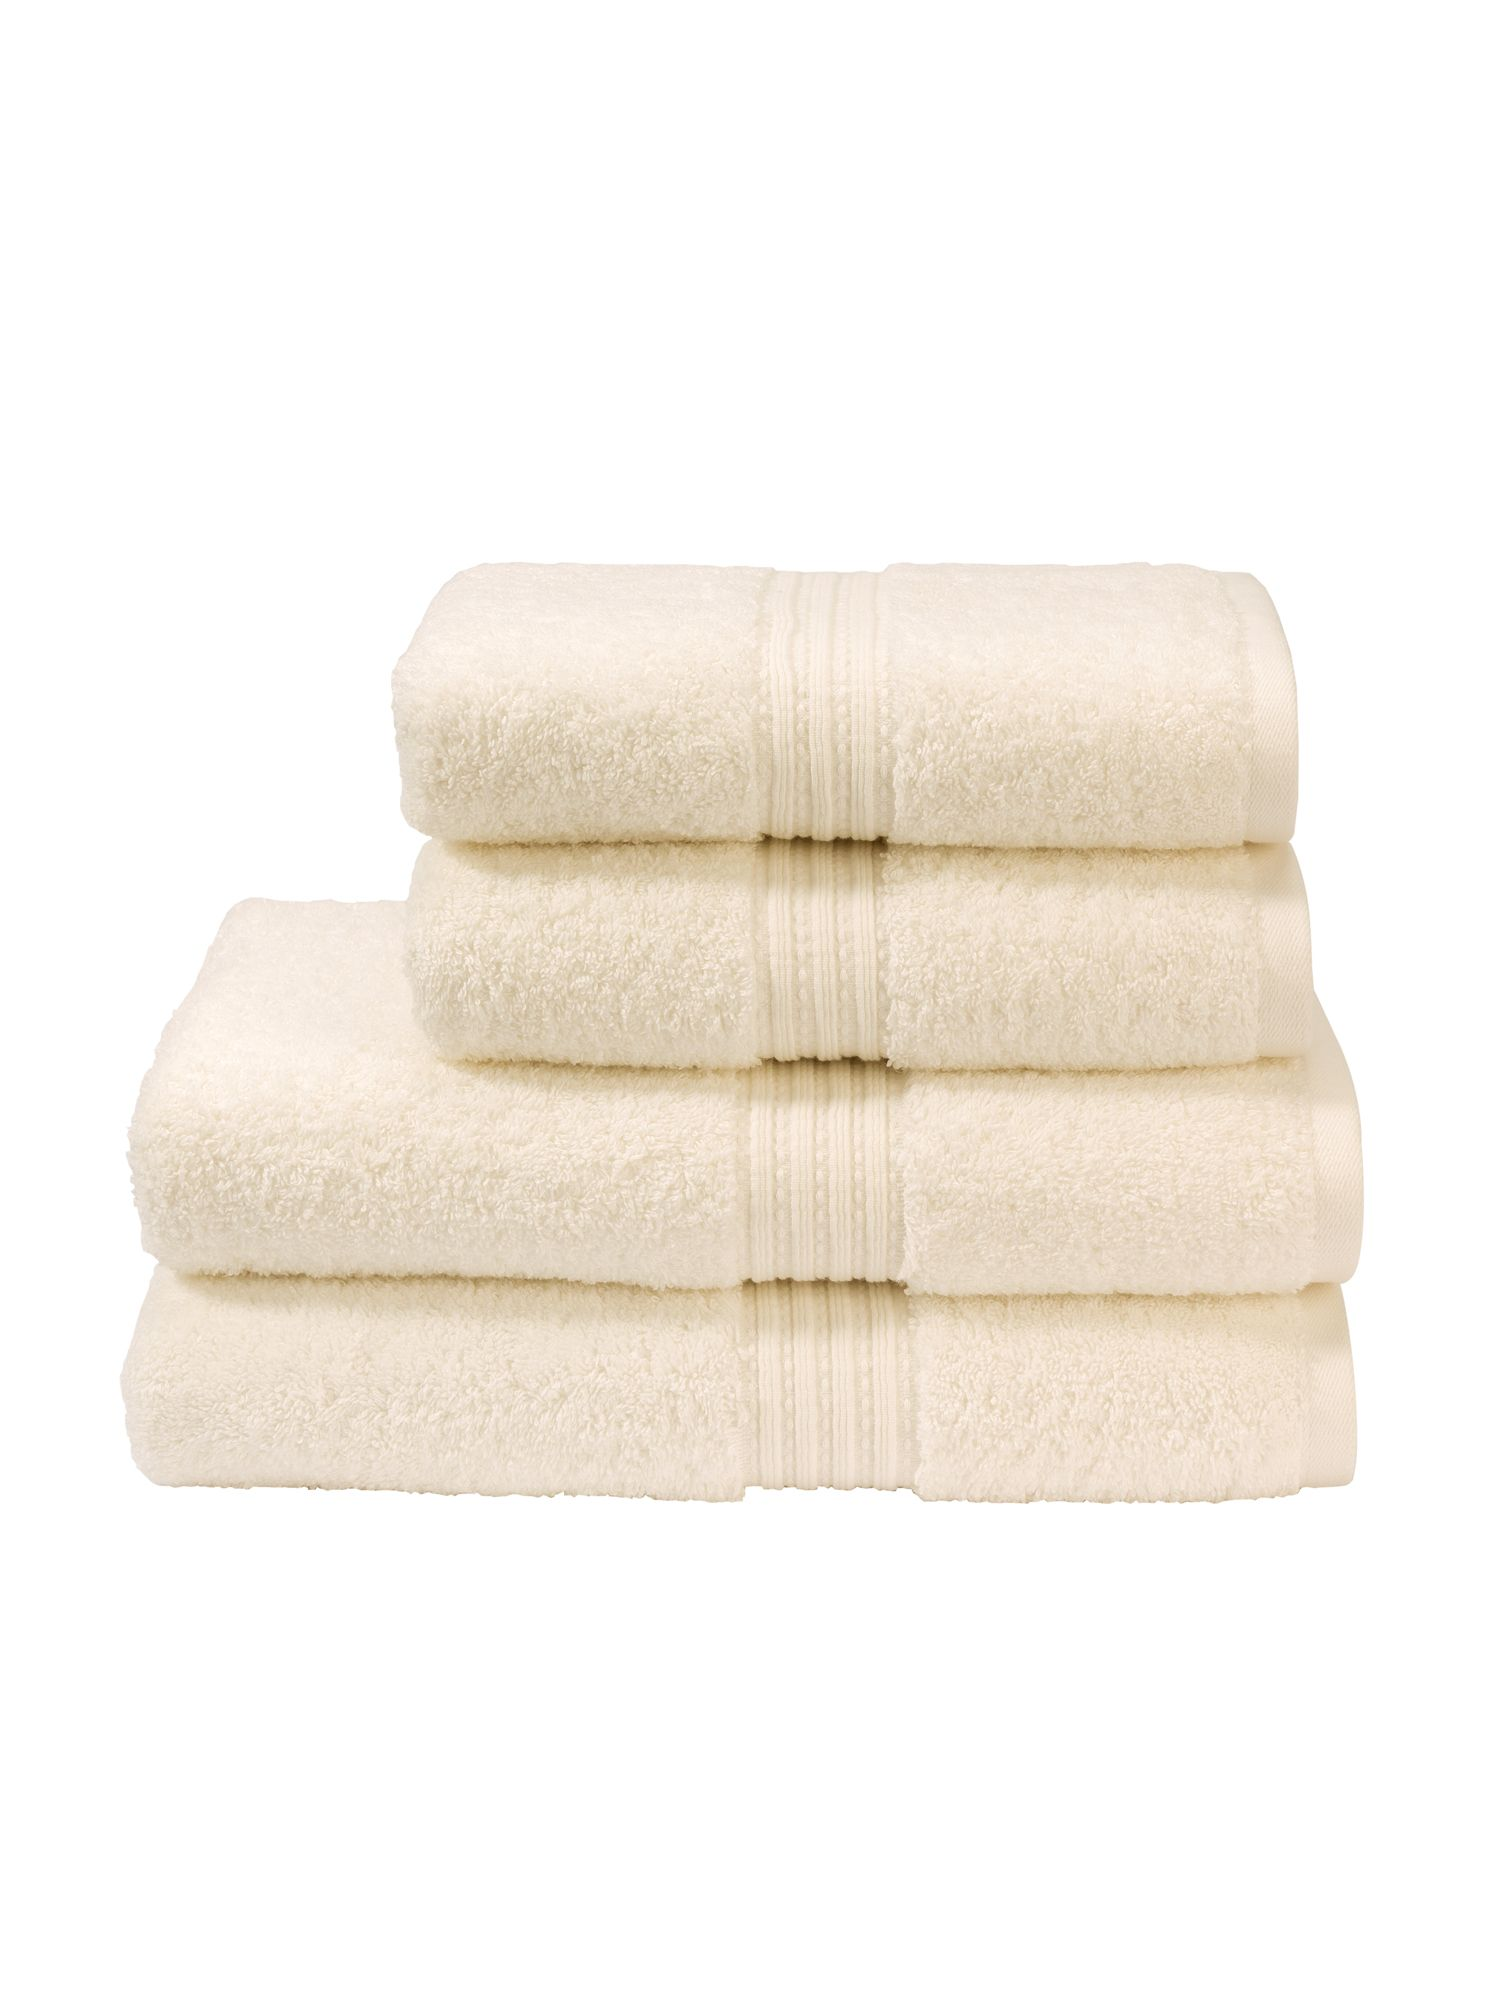 Plush towels in cream